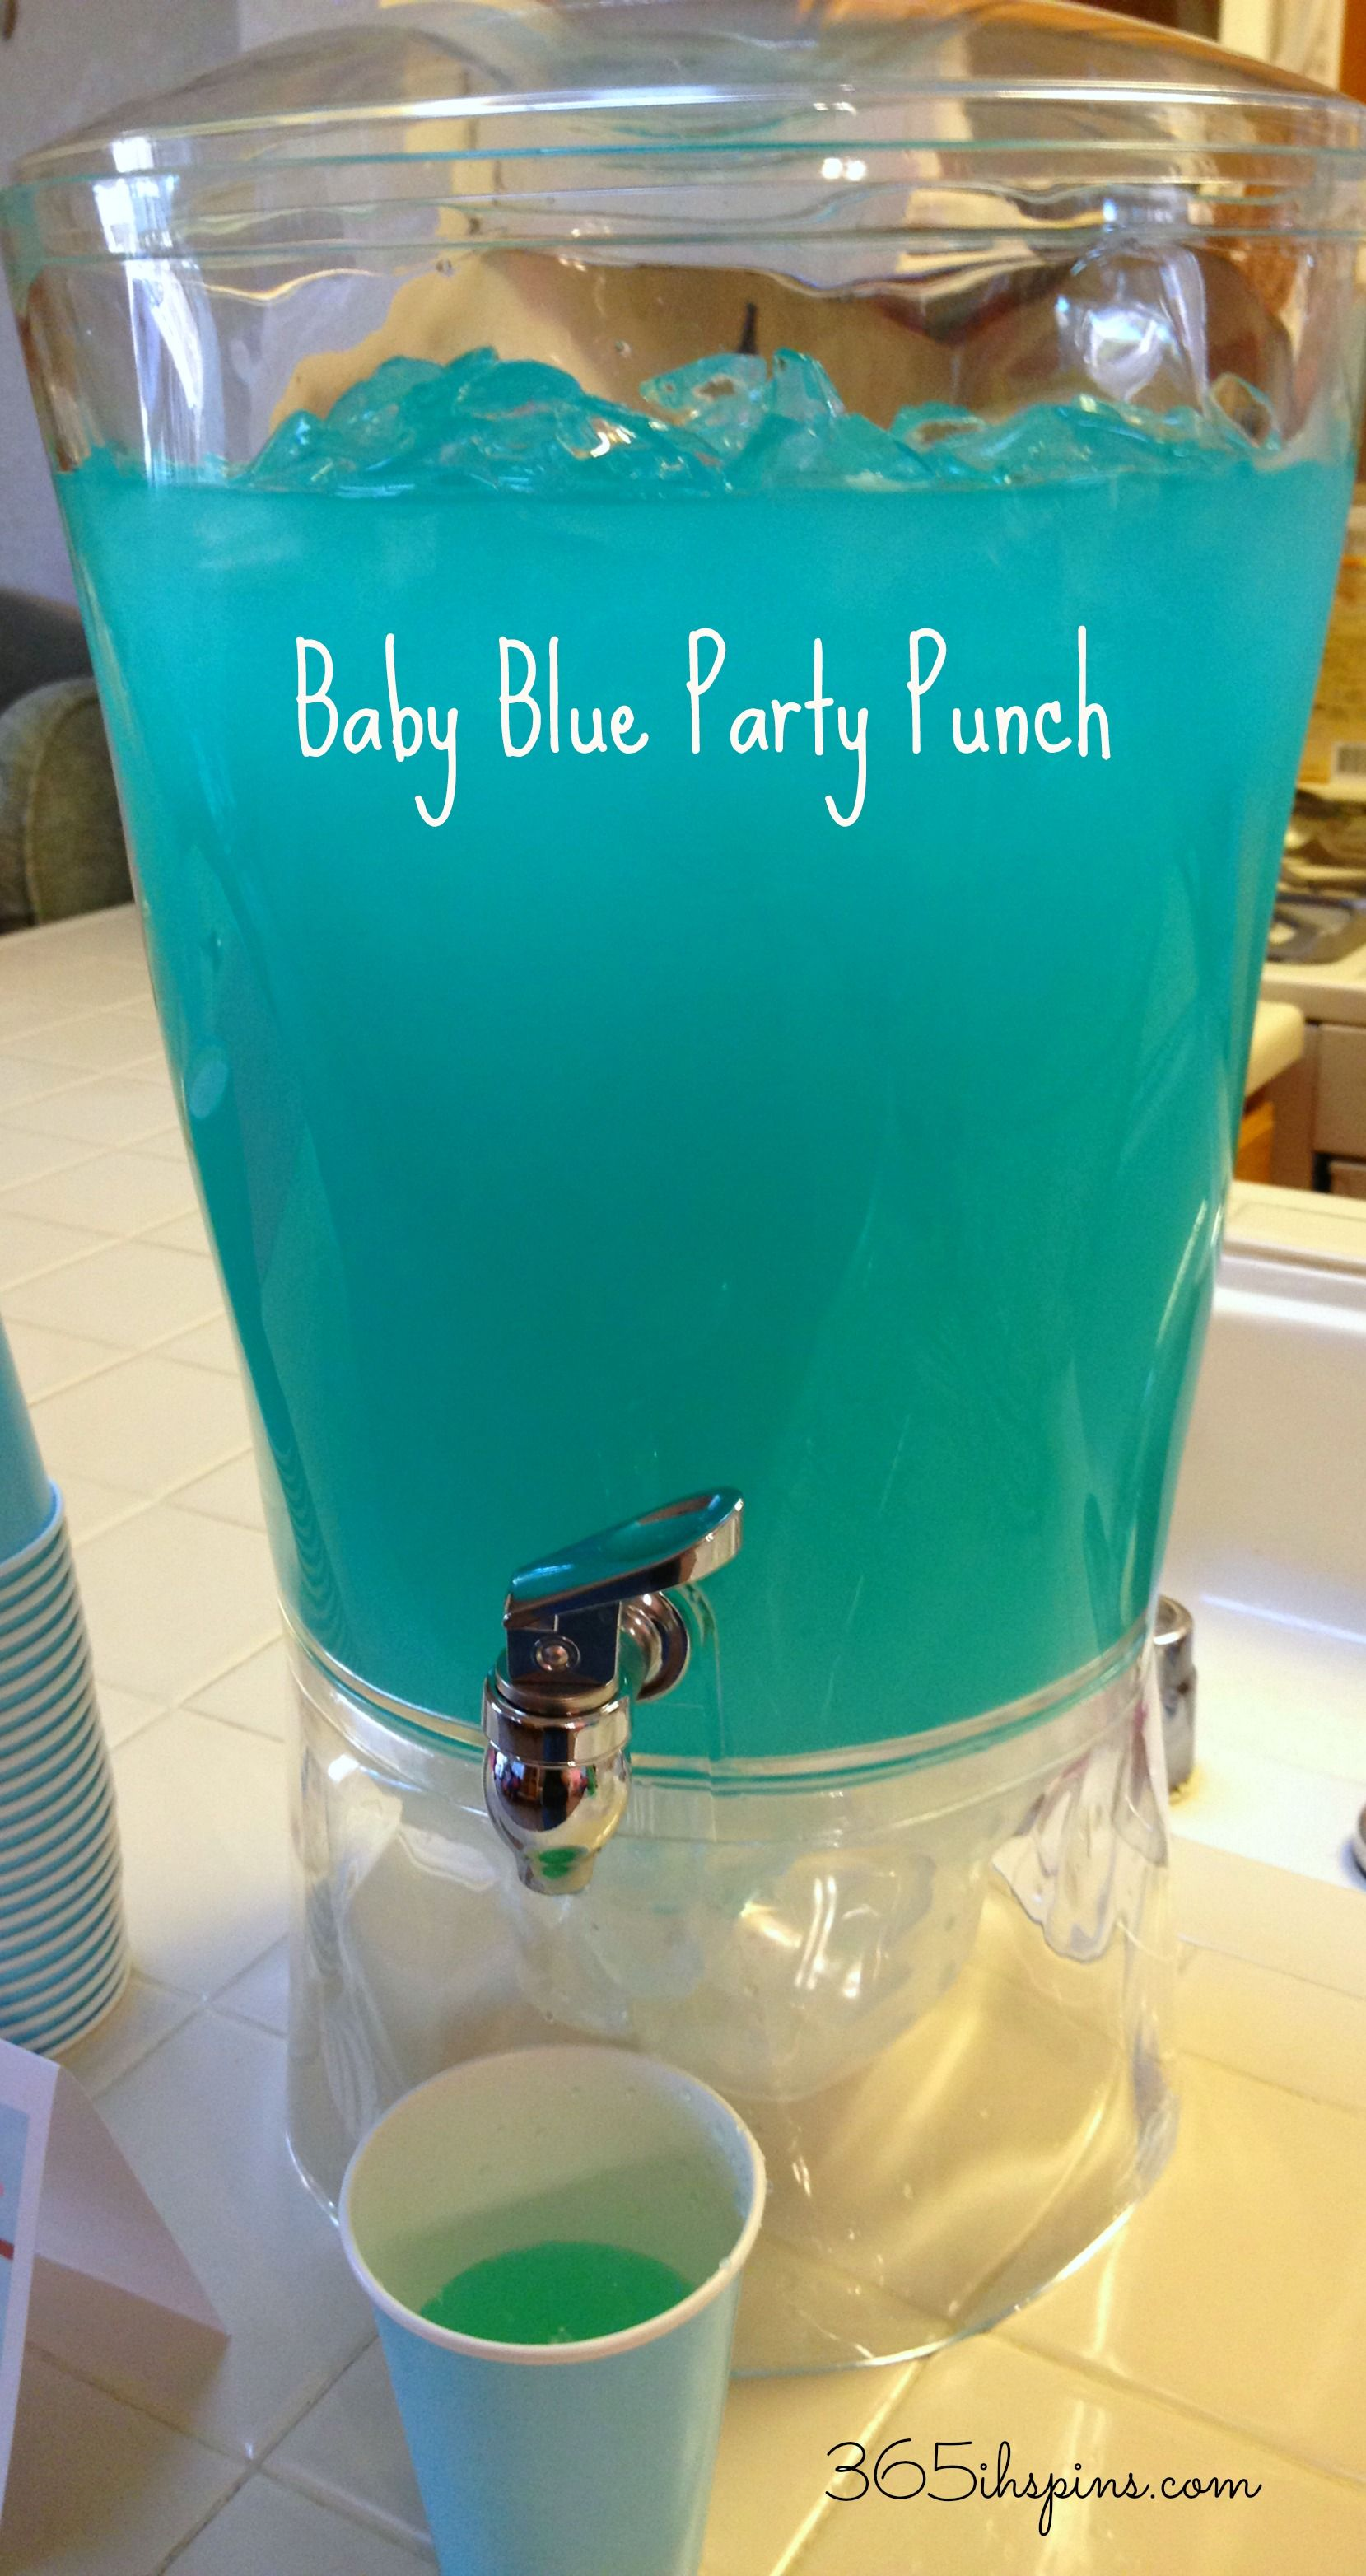 Blue Punch For Baby Shower | Day 291: Pretty Pink Punch U0026 Baby Blue Punch